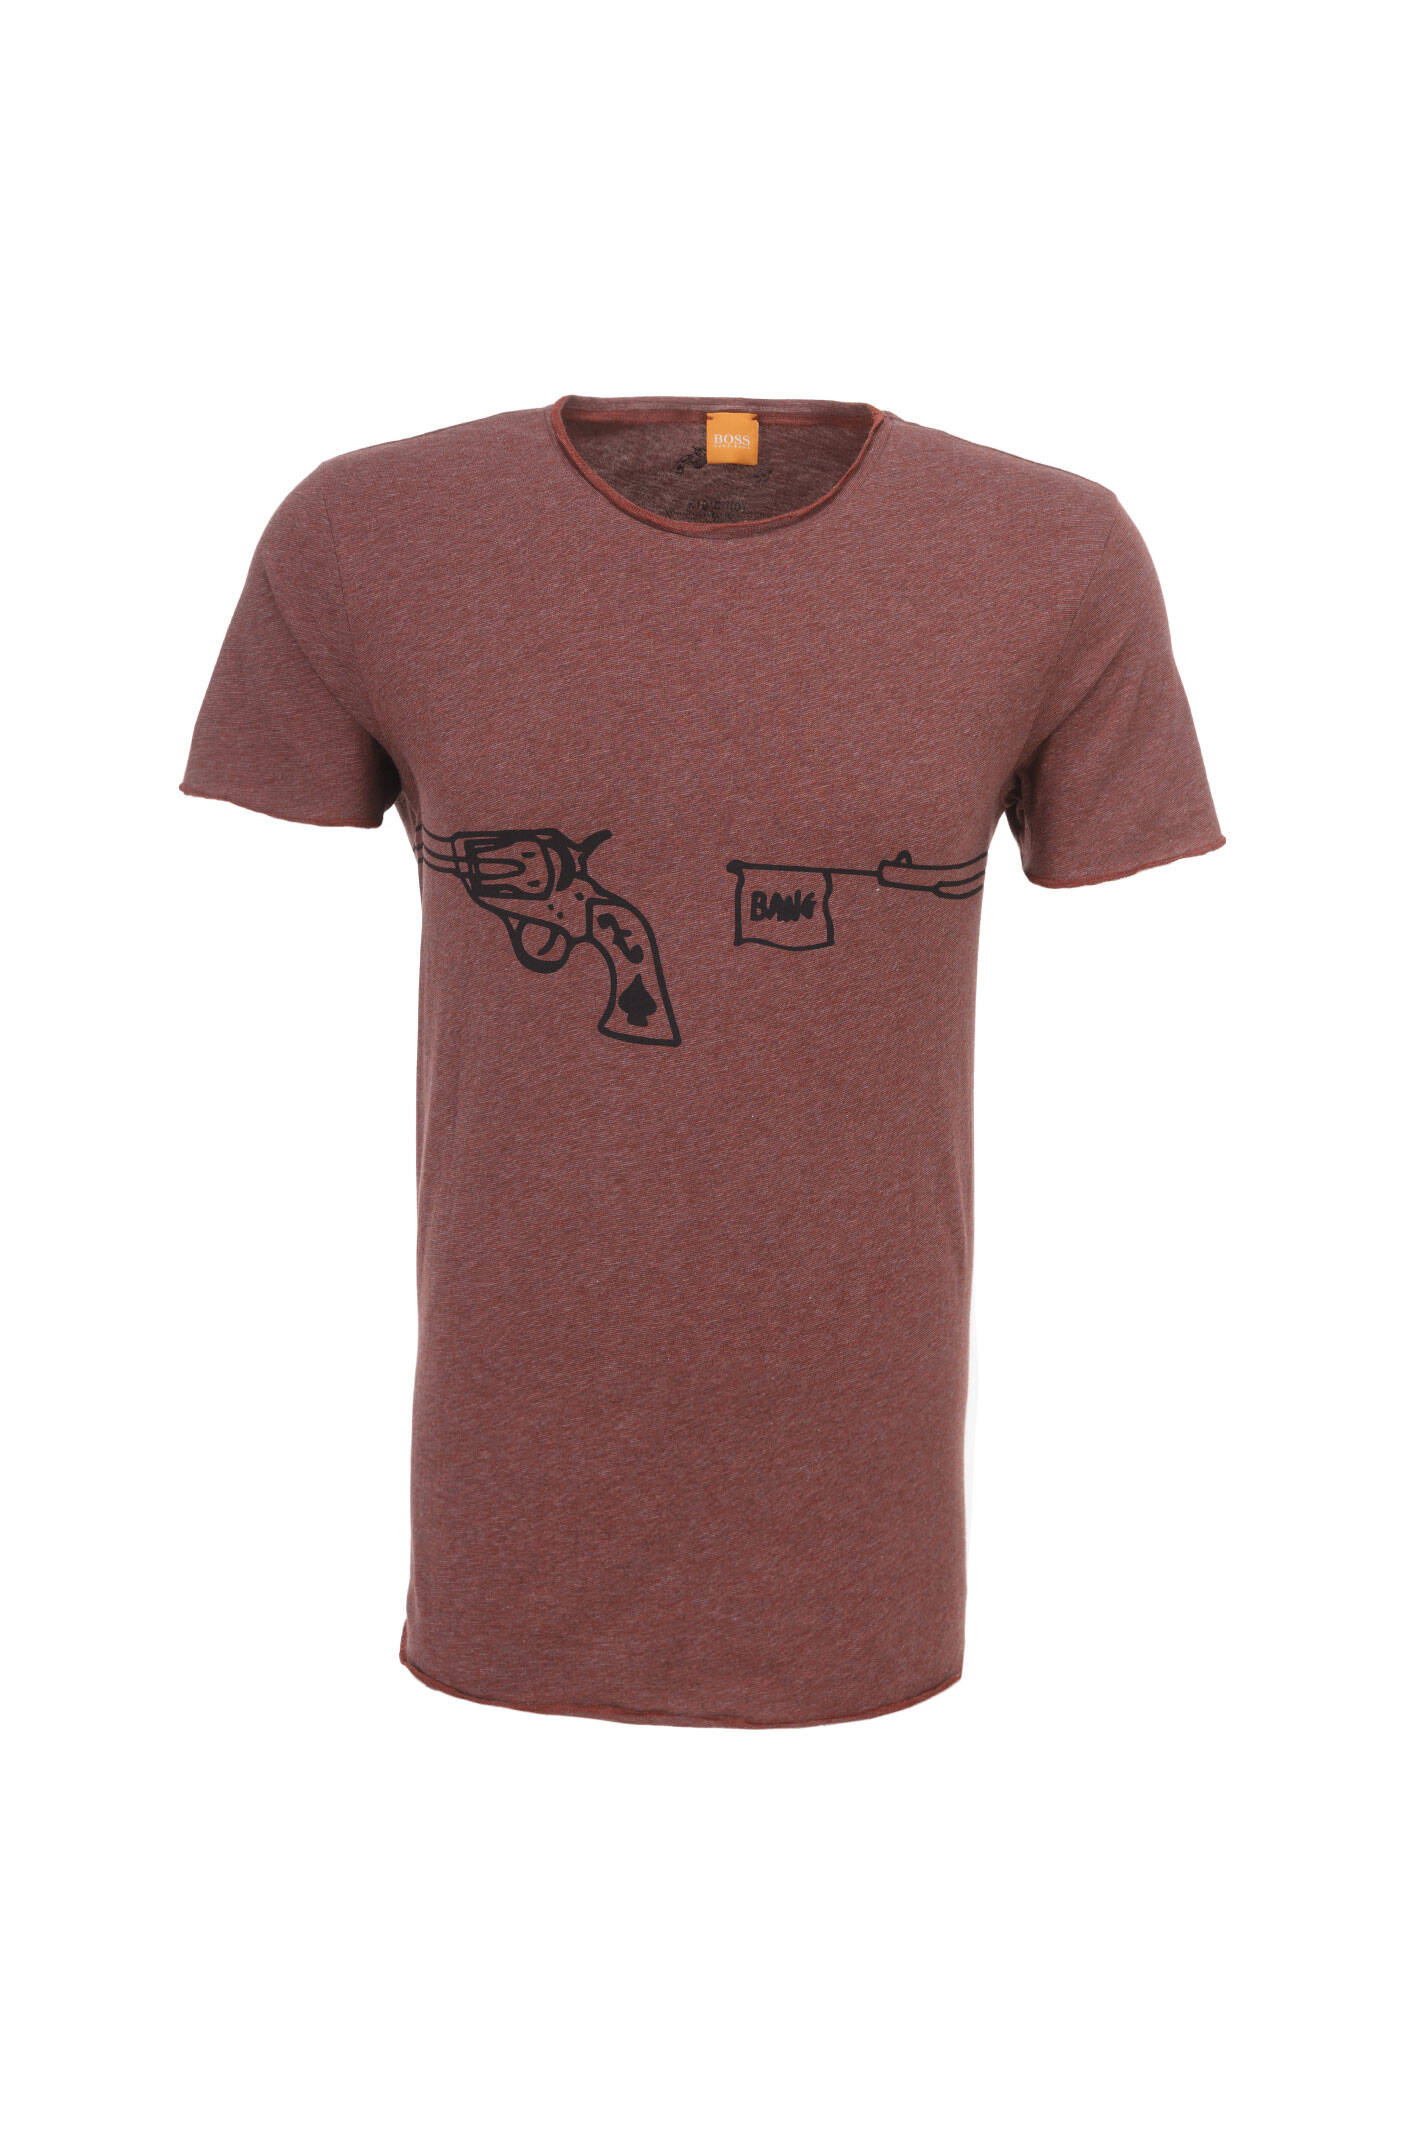 twiah t shirt boss orange burgundy t shirts. Black Bedroom Furniture Sets. Home Design Ideas